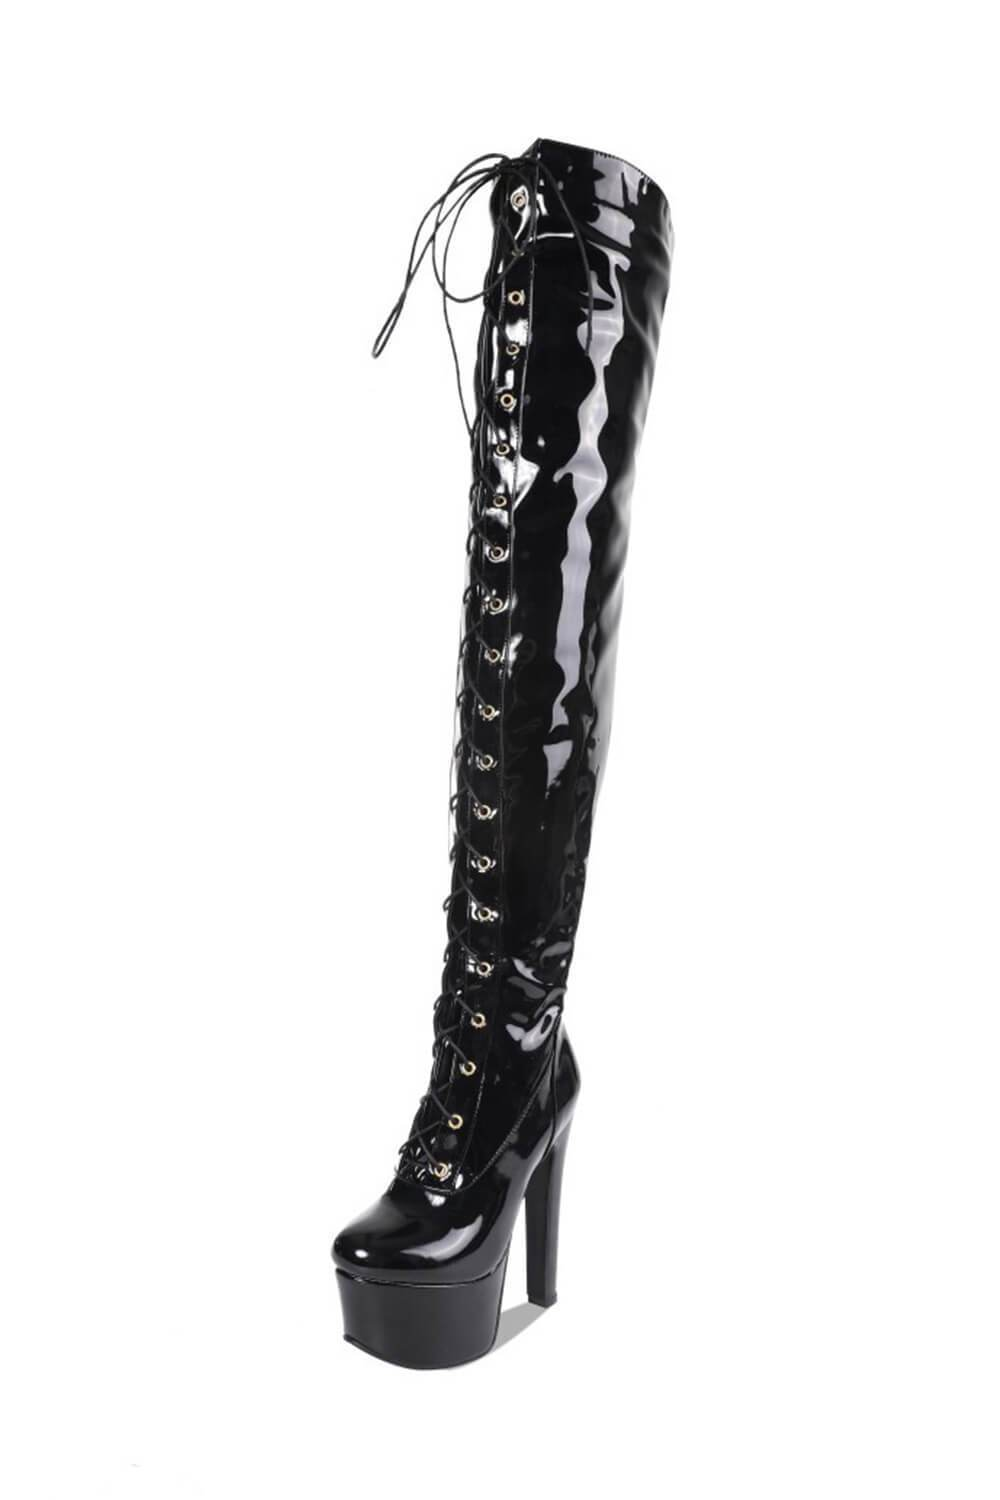 Black Patent Platform Lace Up Over The Knee Boots (4307981533243)